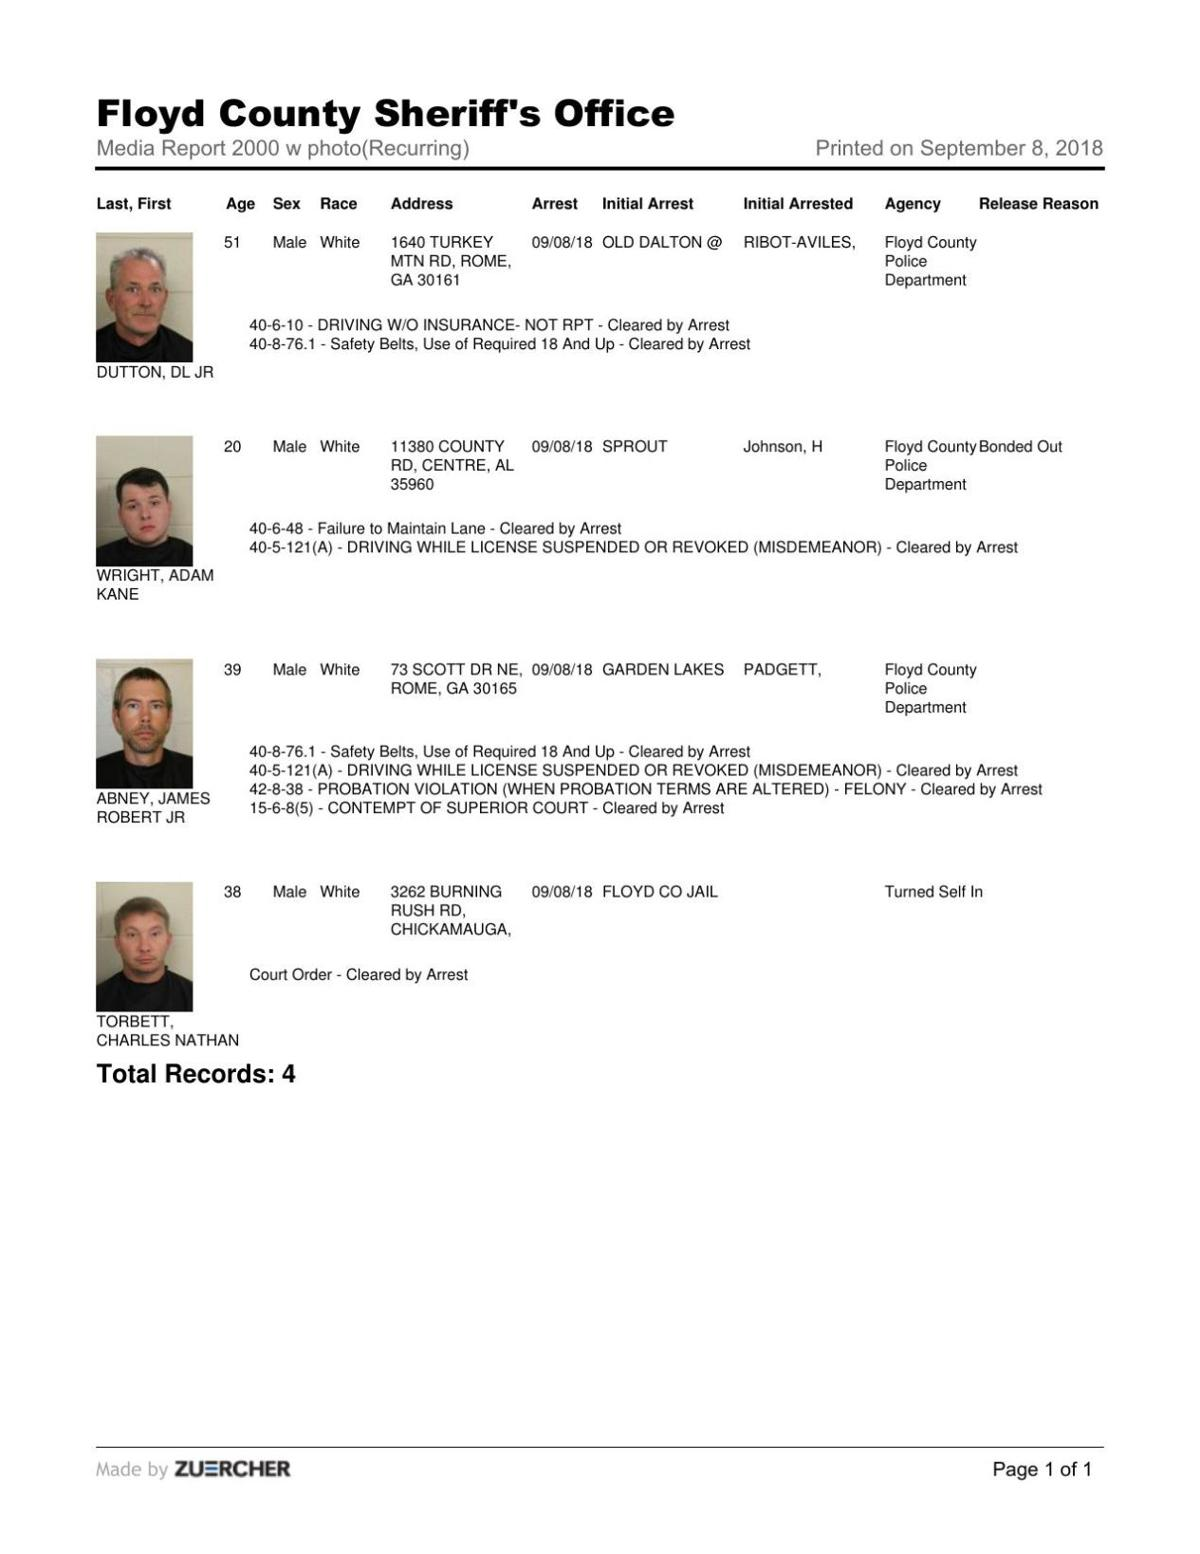 Floyd County Jail for Saturday, Sept. 8